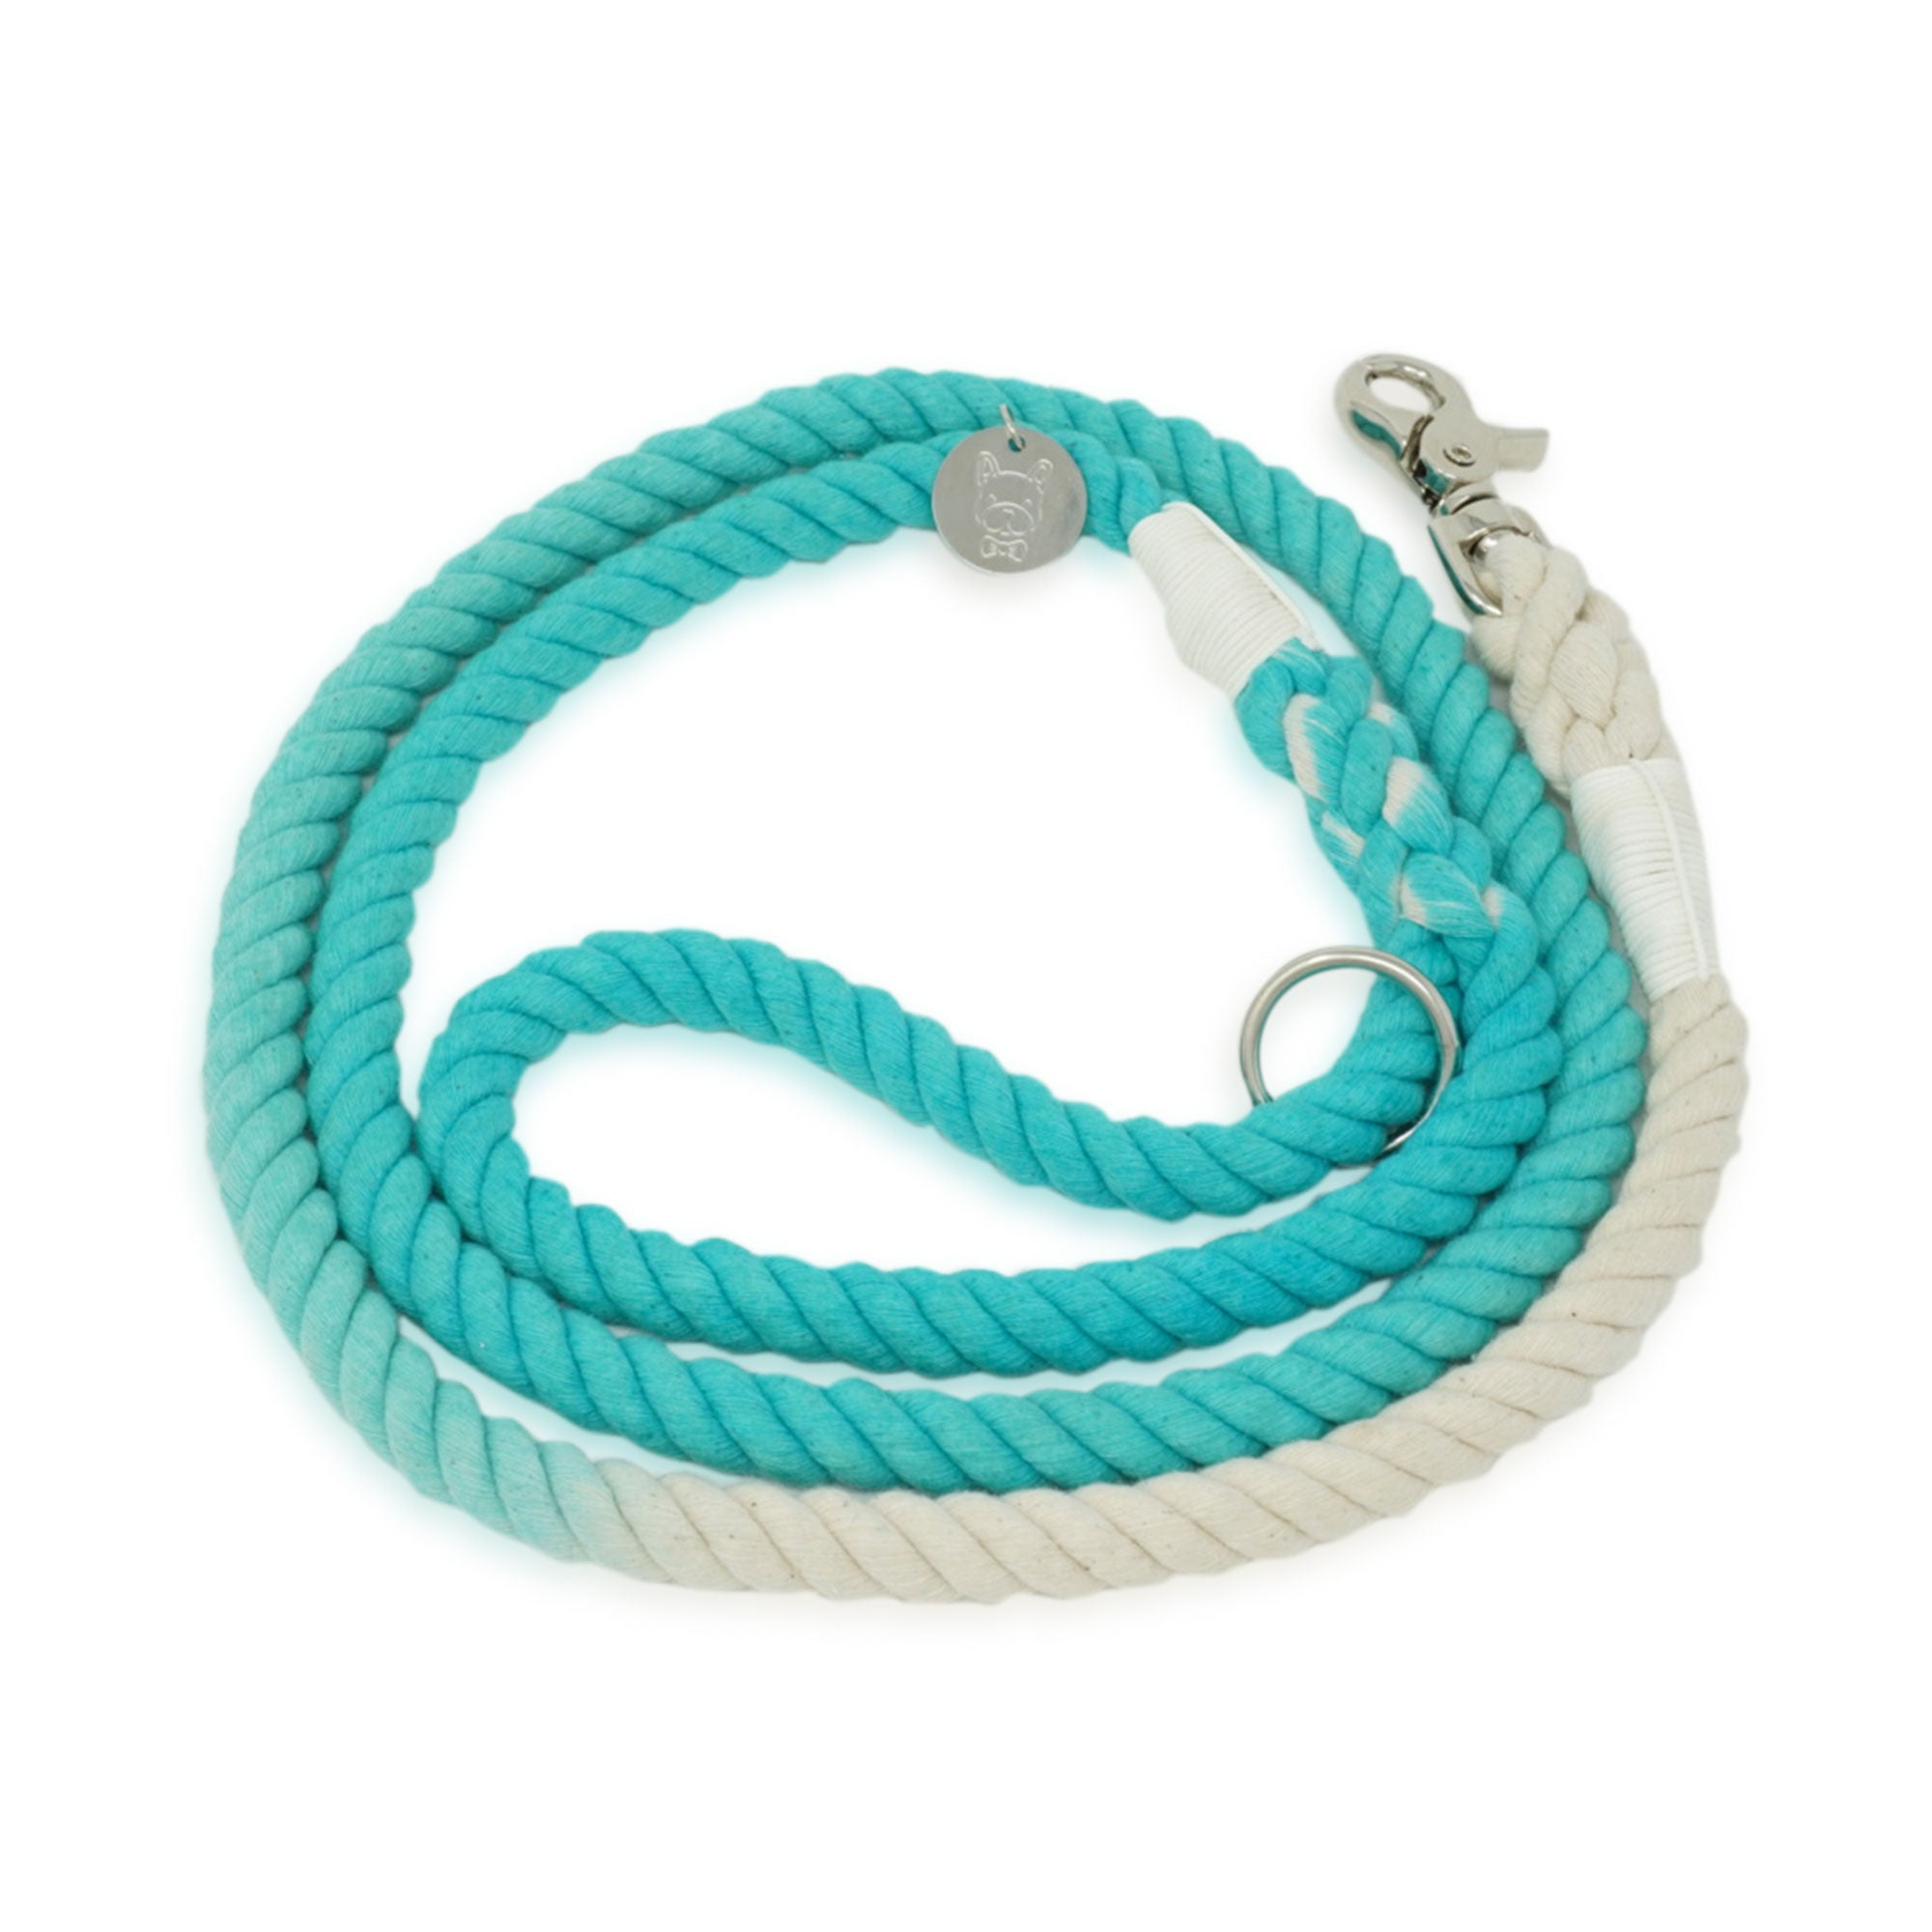 Cotton Rope Leash - Turquoise Ombre